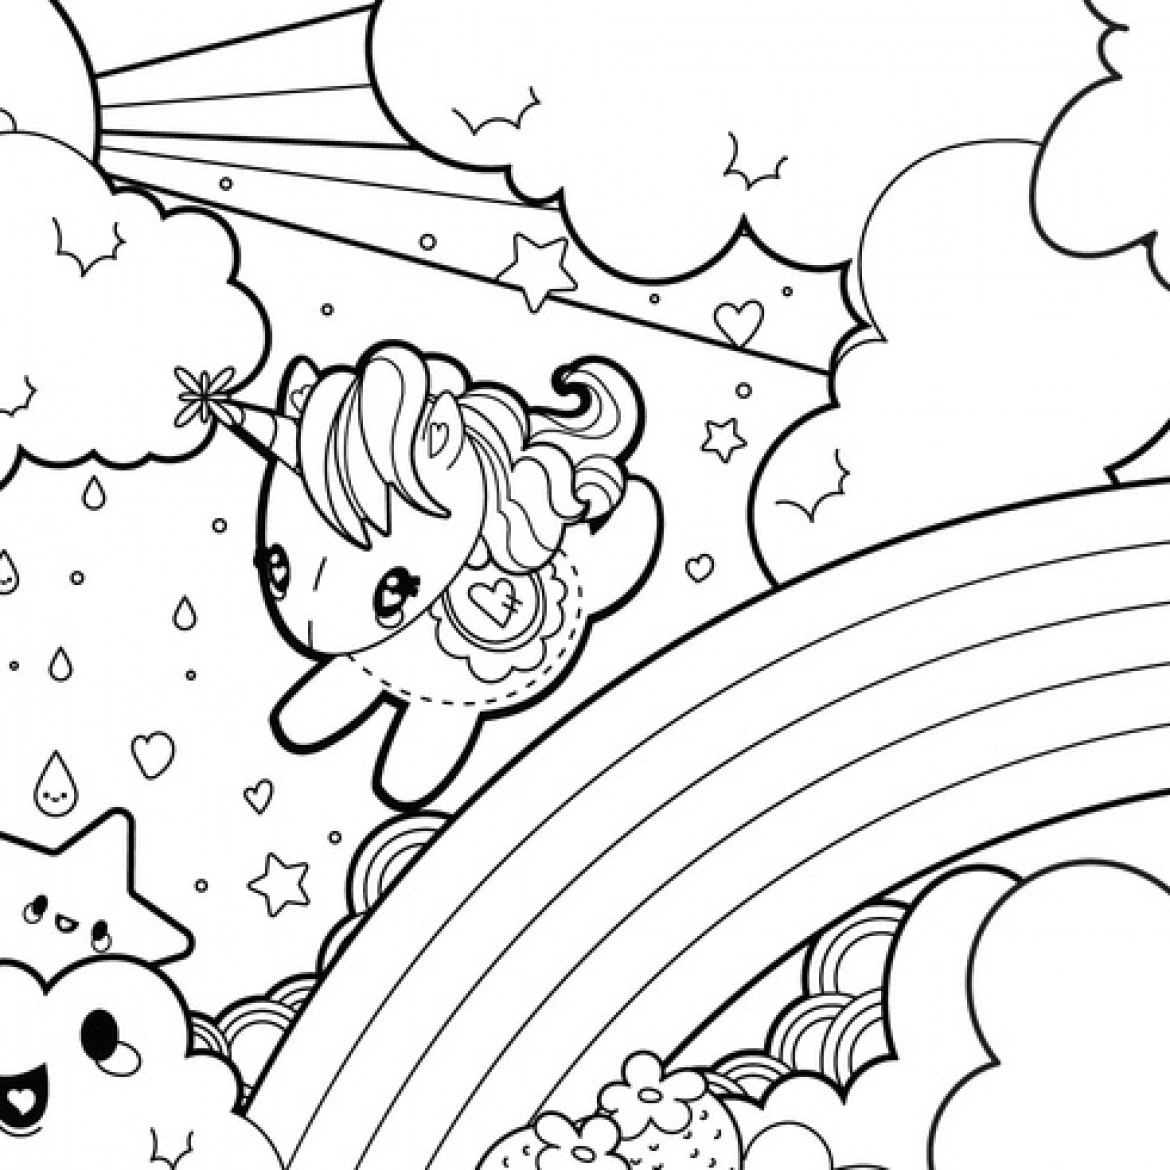 1170x1170 Baby Unicorn Coloring Pages For Kids Pleasing Kawaii Fancy